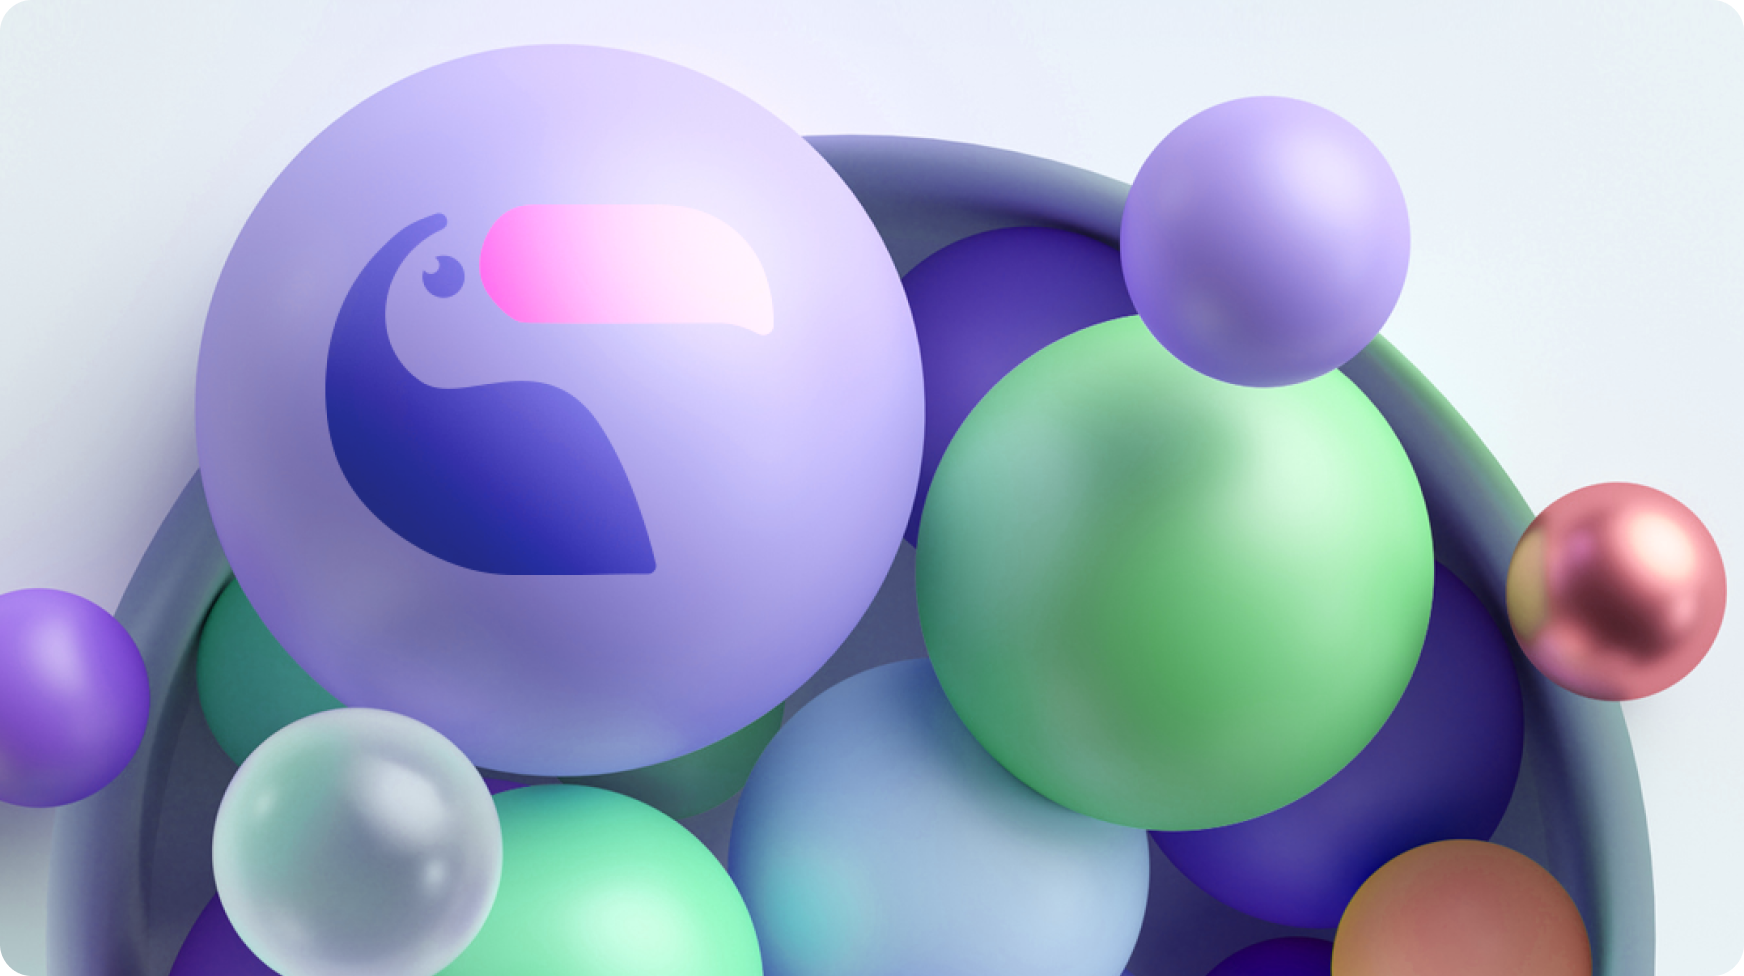 Colourful bubbles with Toucan logo